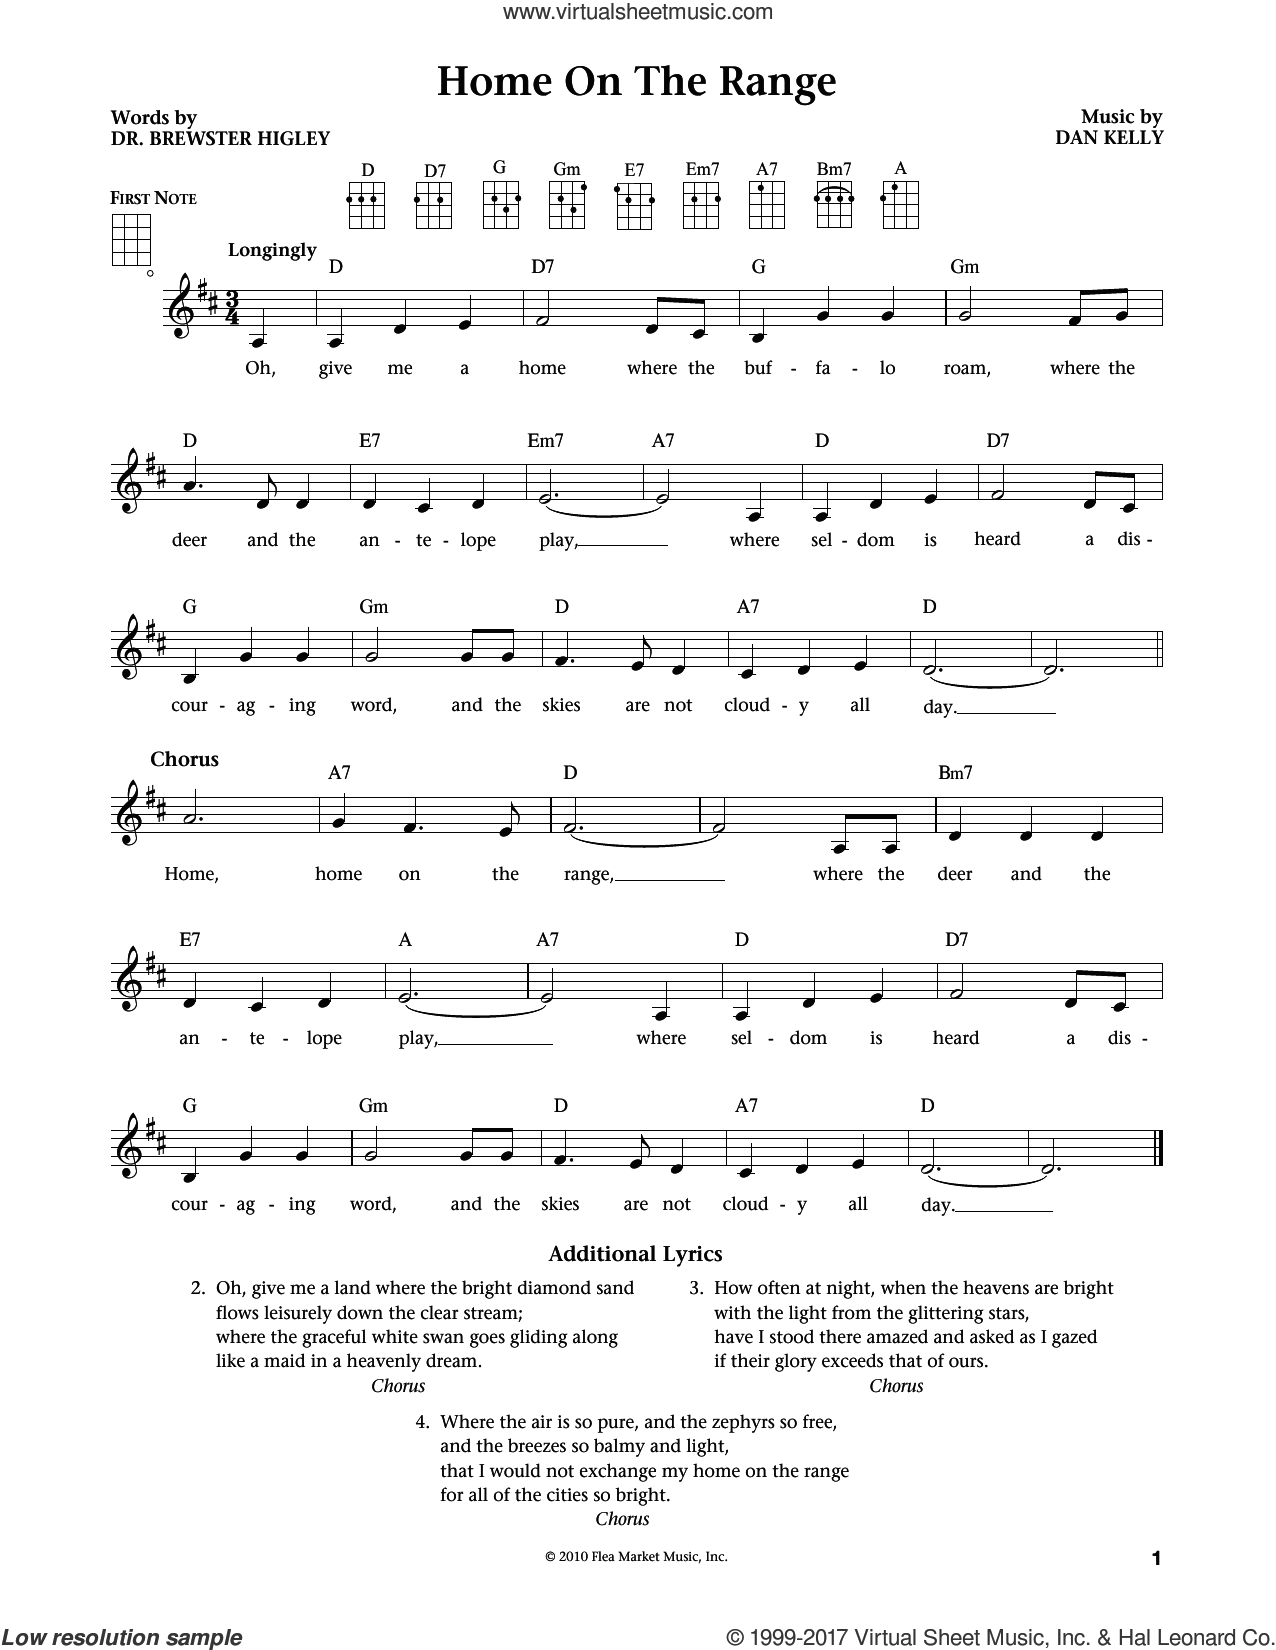 Home On The Range (from The Daily Ukulele) (arr. Liz and Jim Beloff) sheet music for ukulele by Dan Kelly, Jim Beloff, Liz Beloff and Dr. Brewster Higley, intermediate skill level